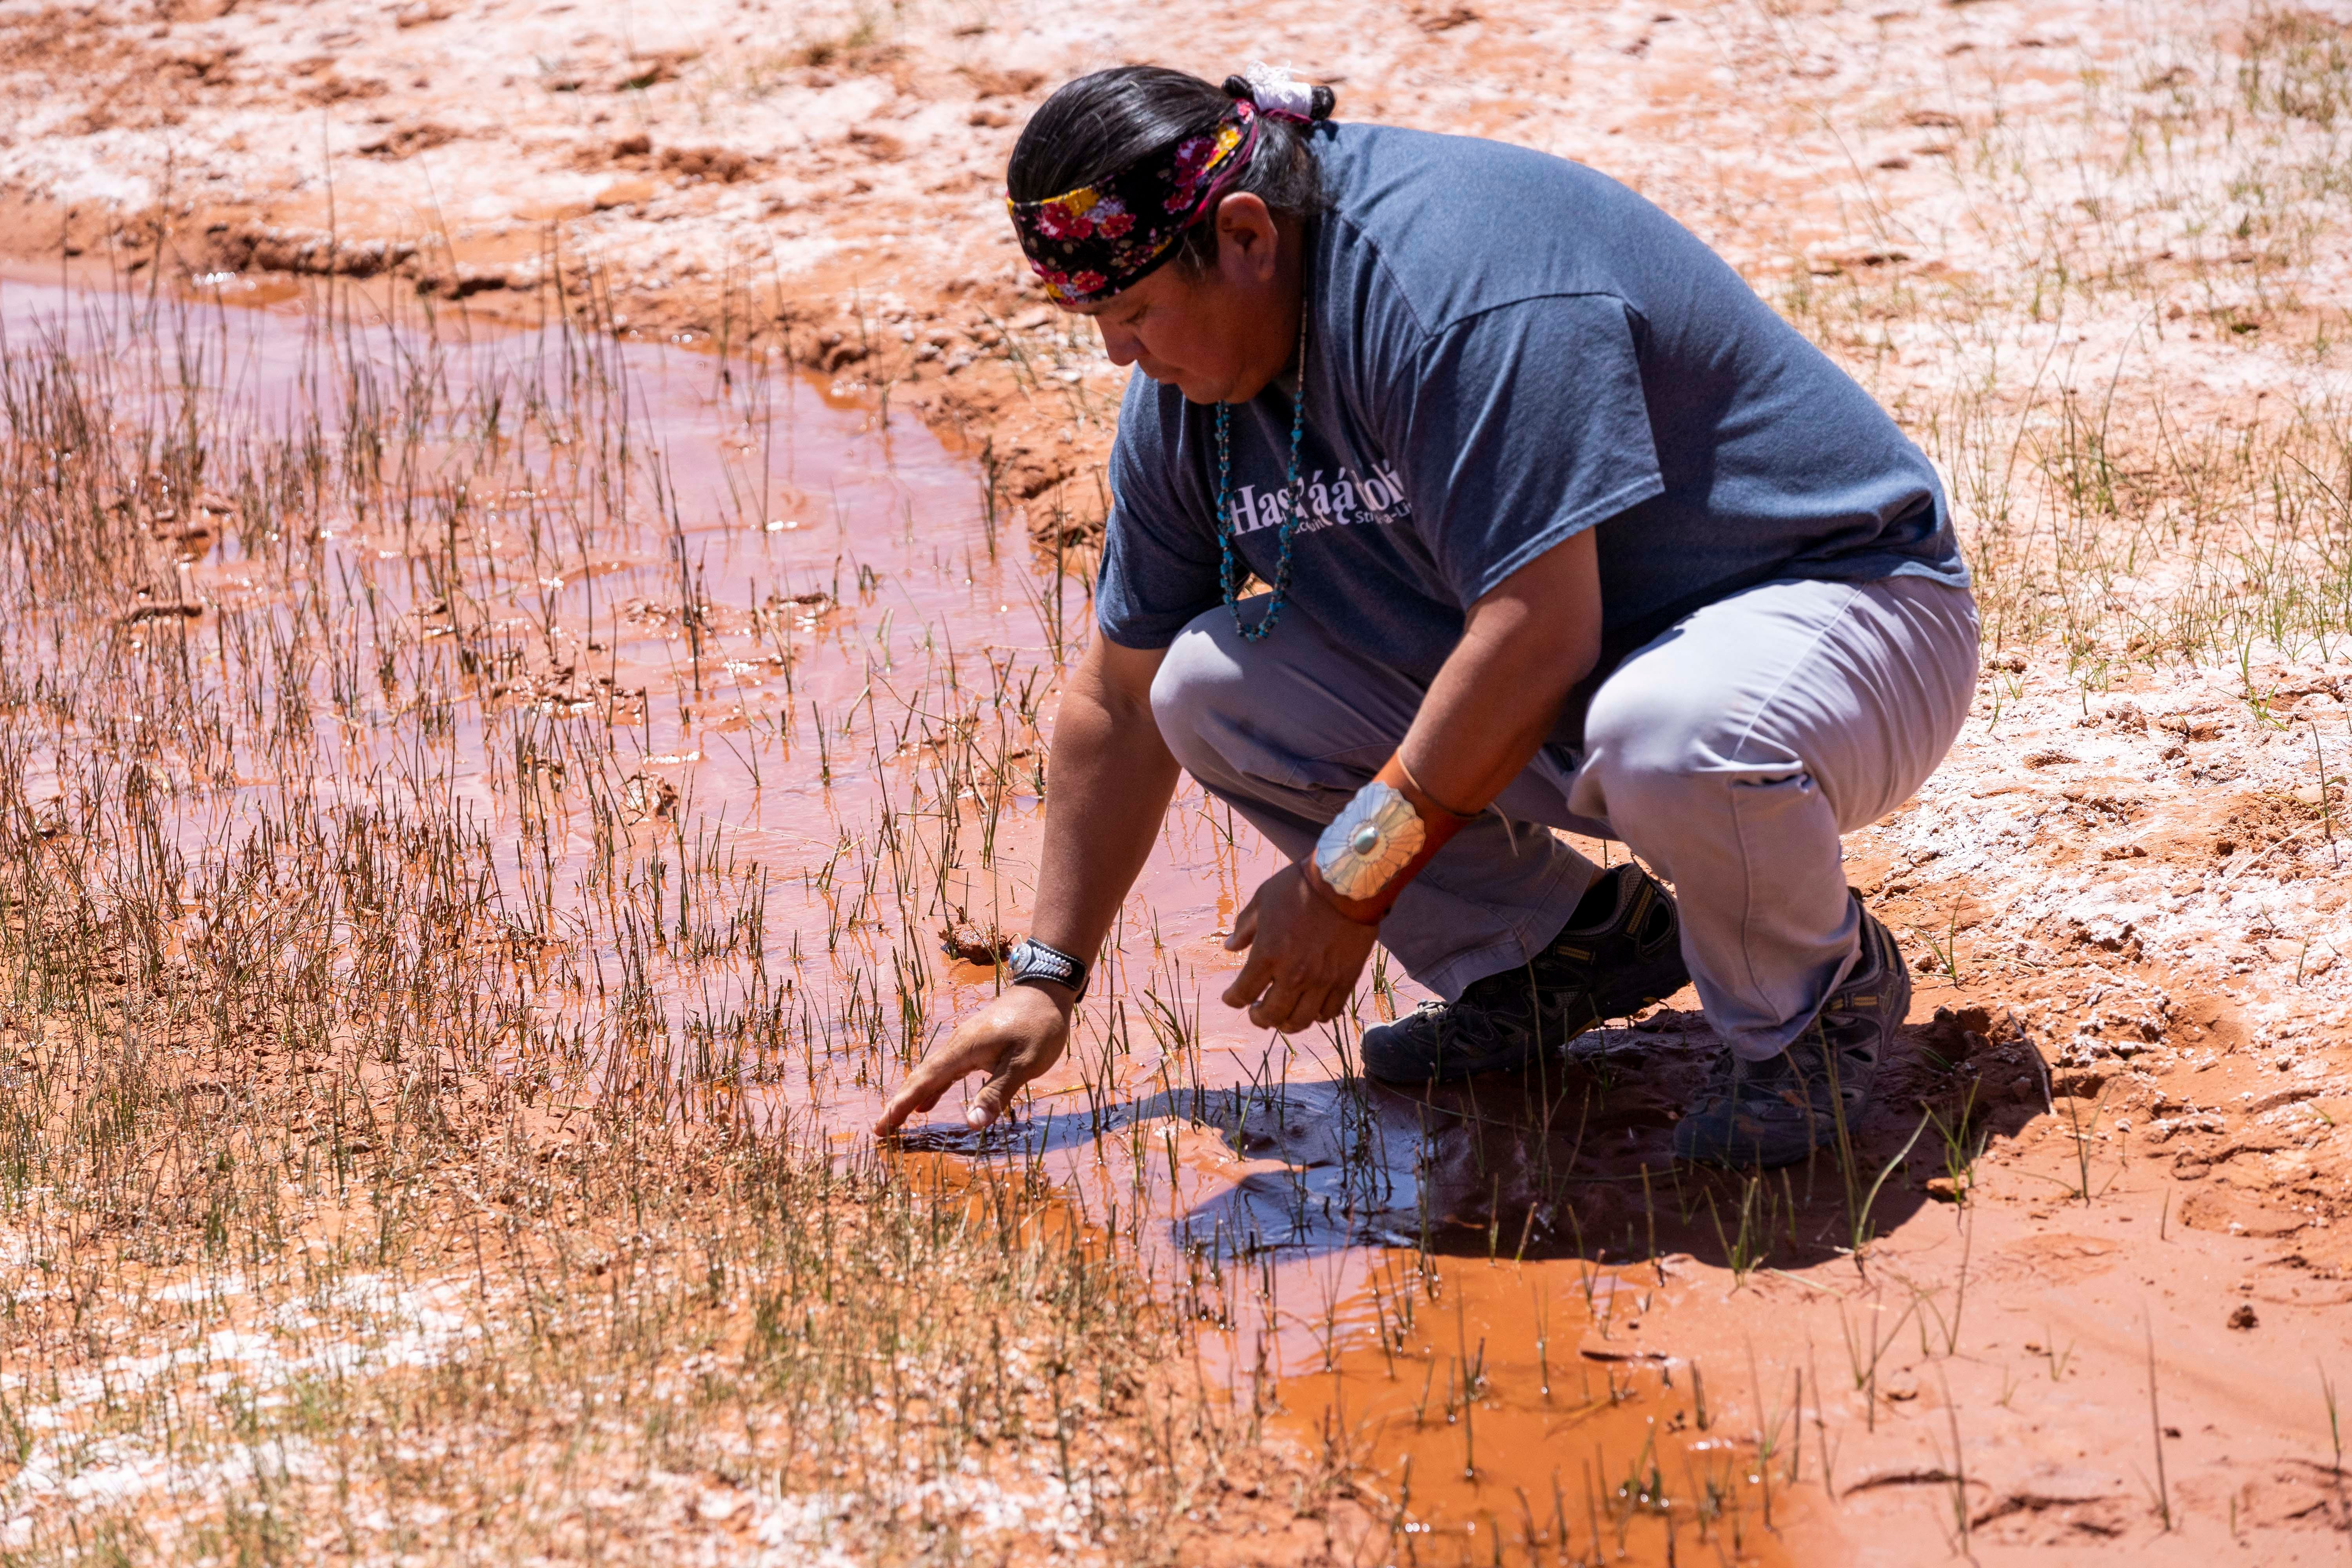 While driving through Monument Valley to deliver water to families, Larry Holiday stopped at a spring. People have long brought their sheep to drink from the stream.